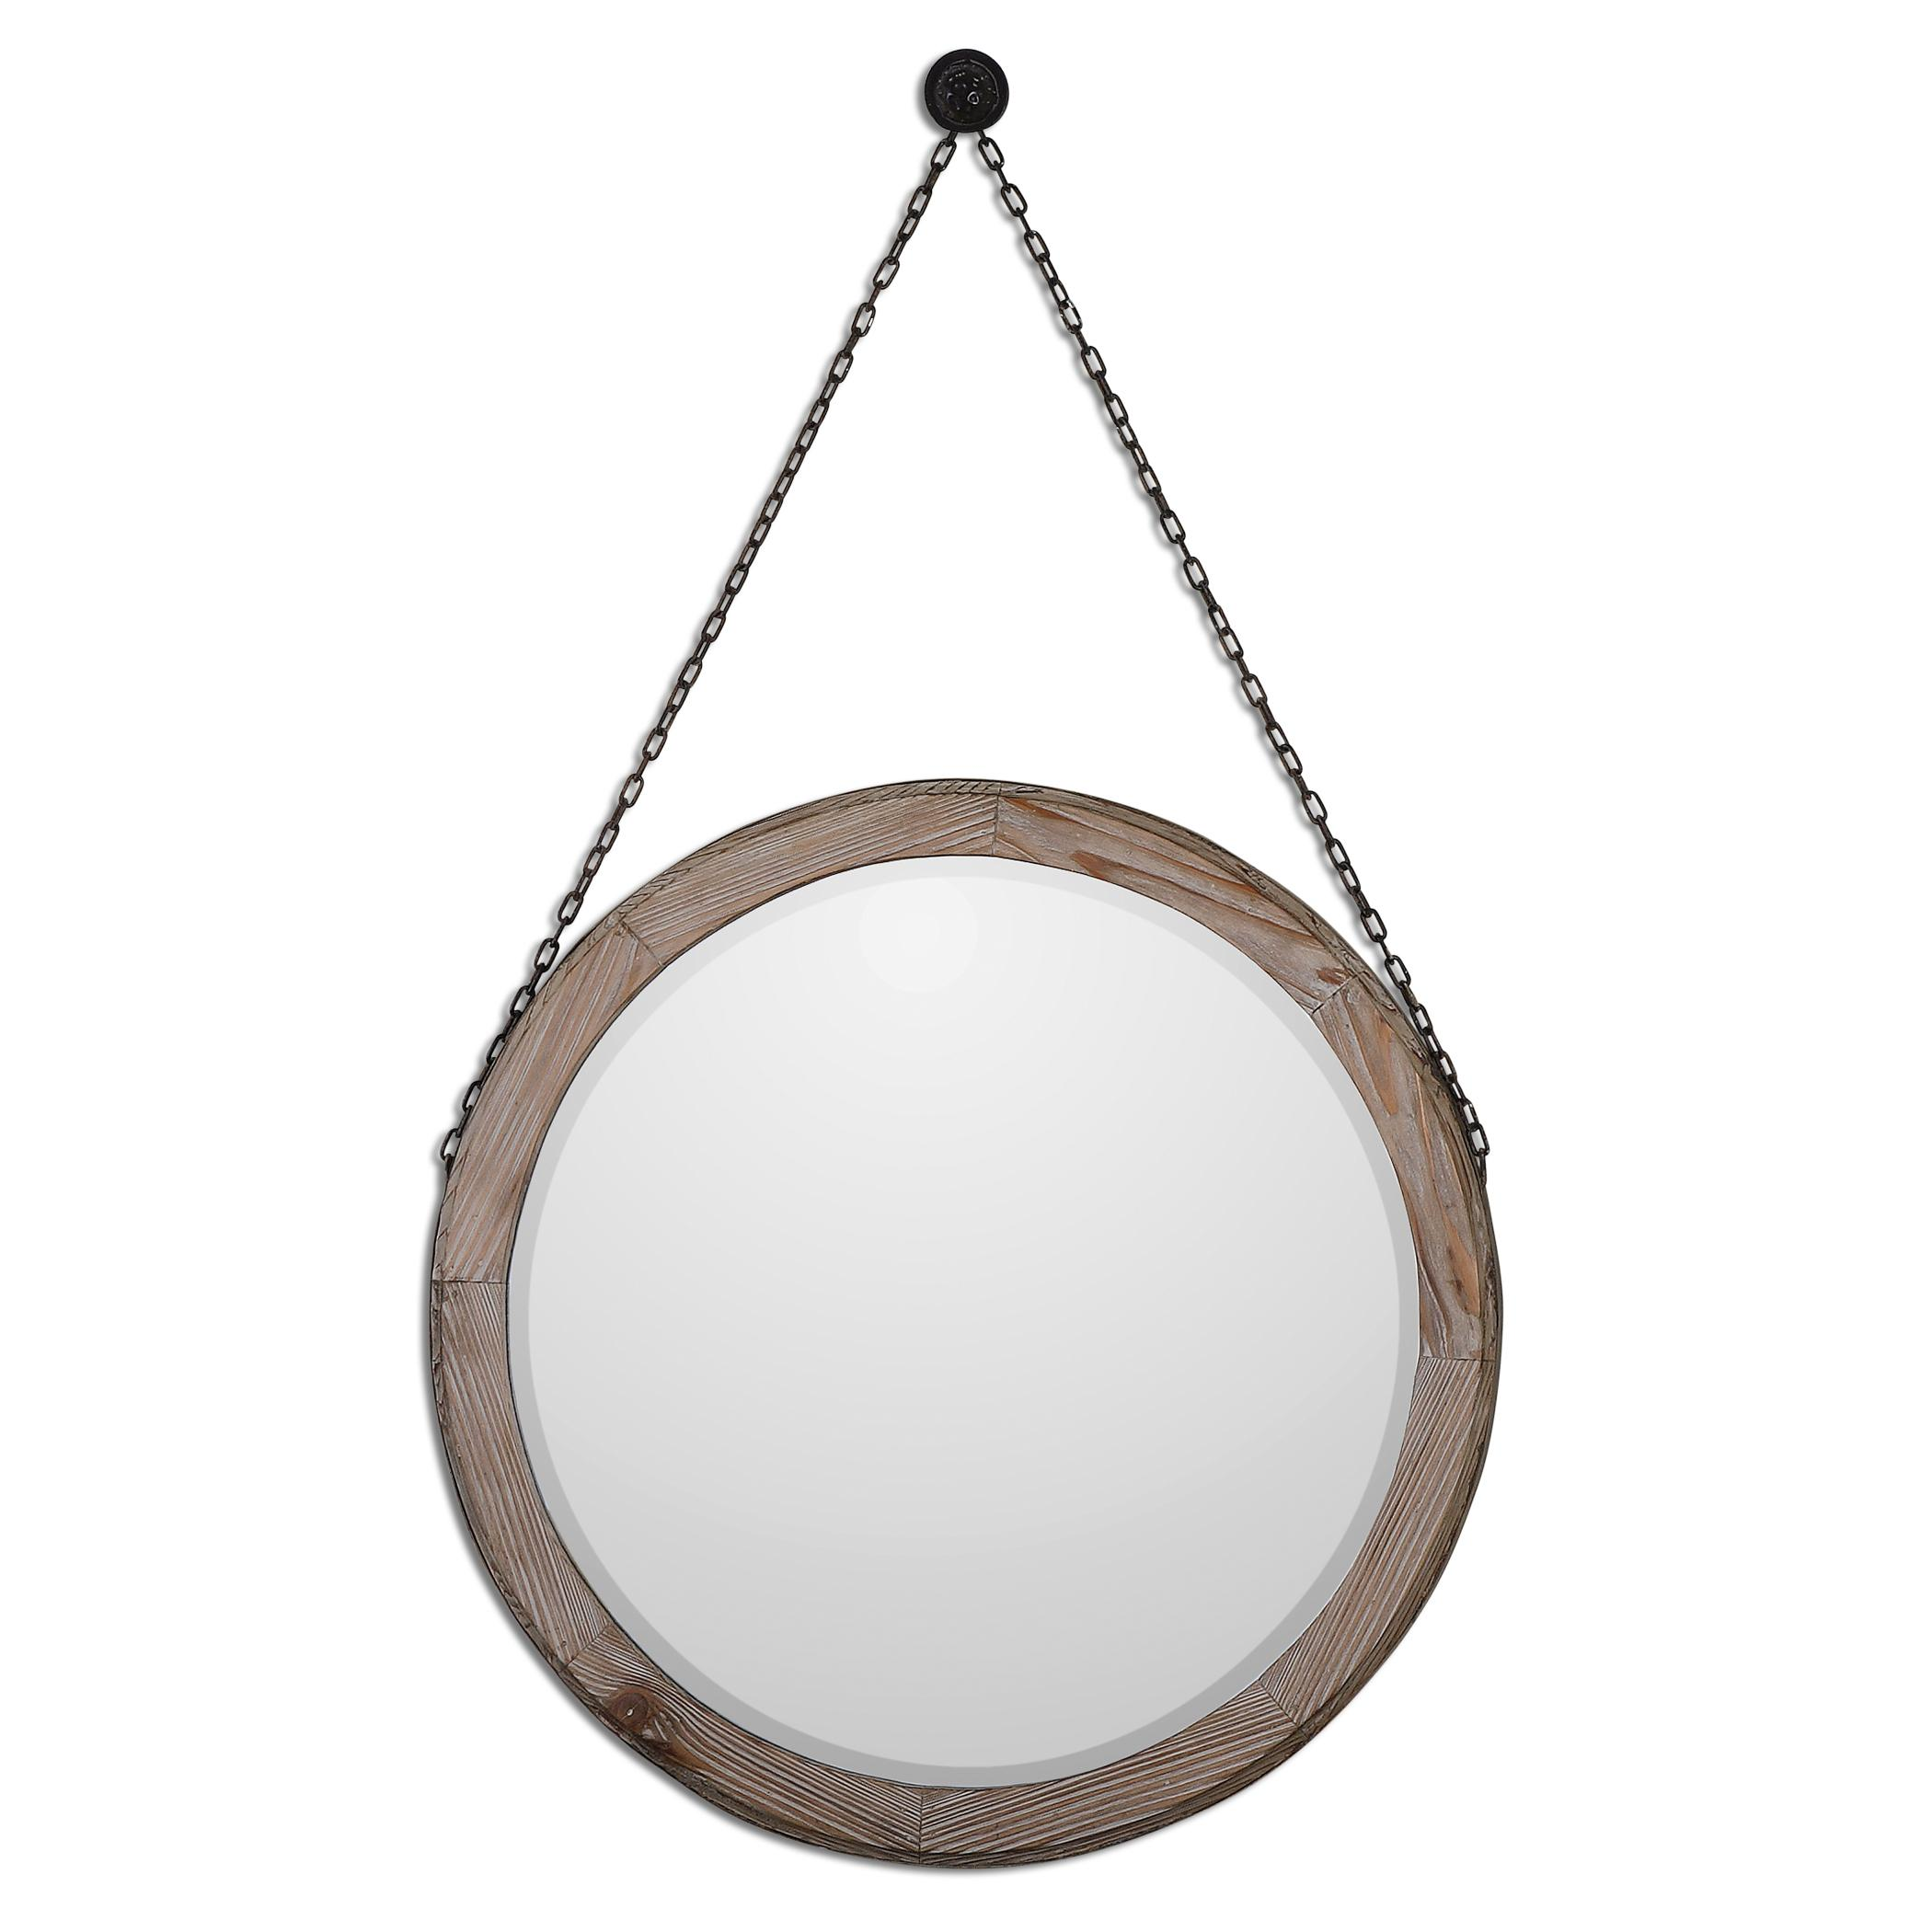 Uttermost Mirrors Loughlin Round Wood Mirror - Item Number: 07656